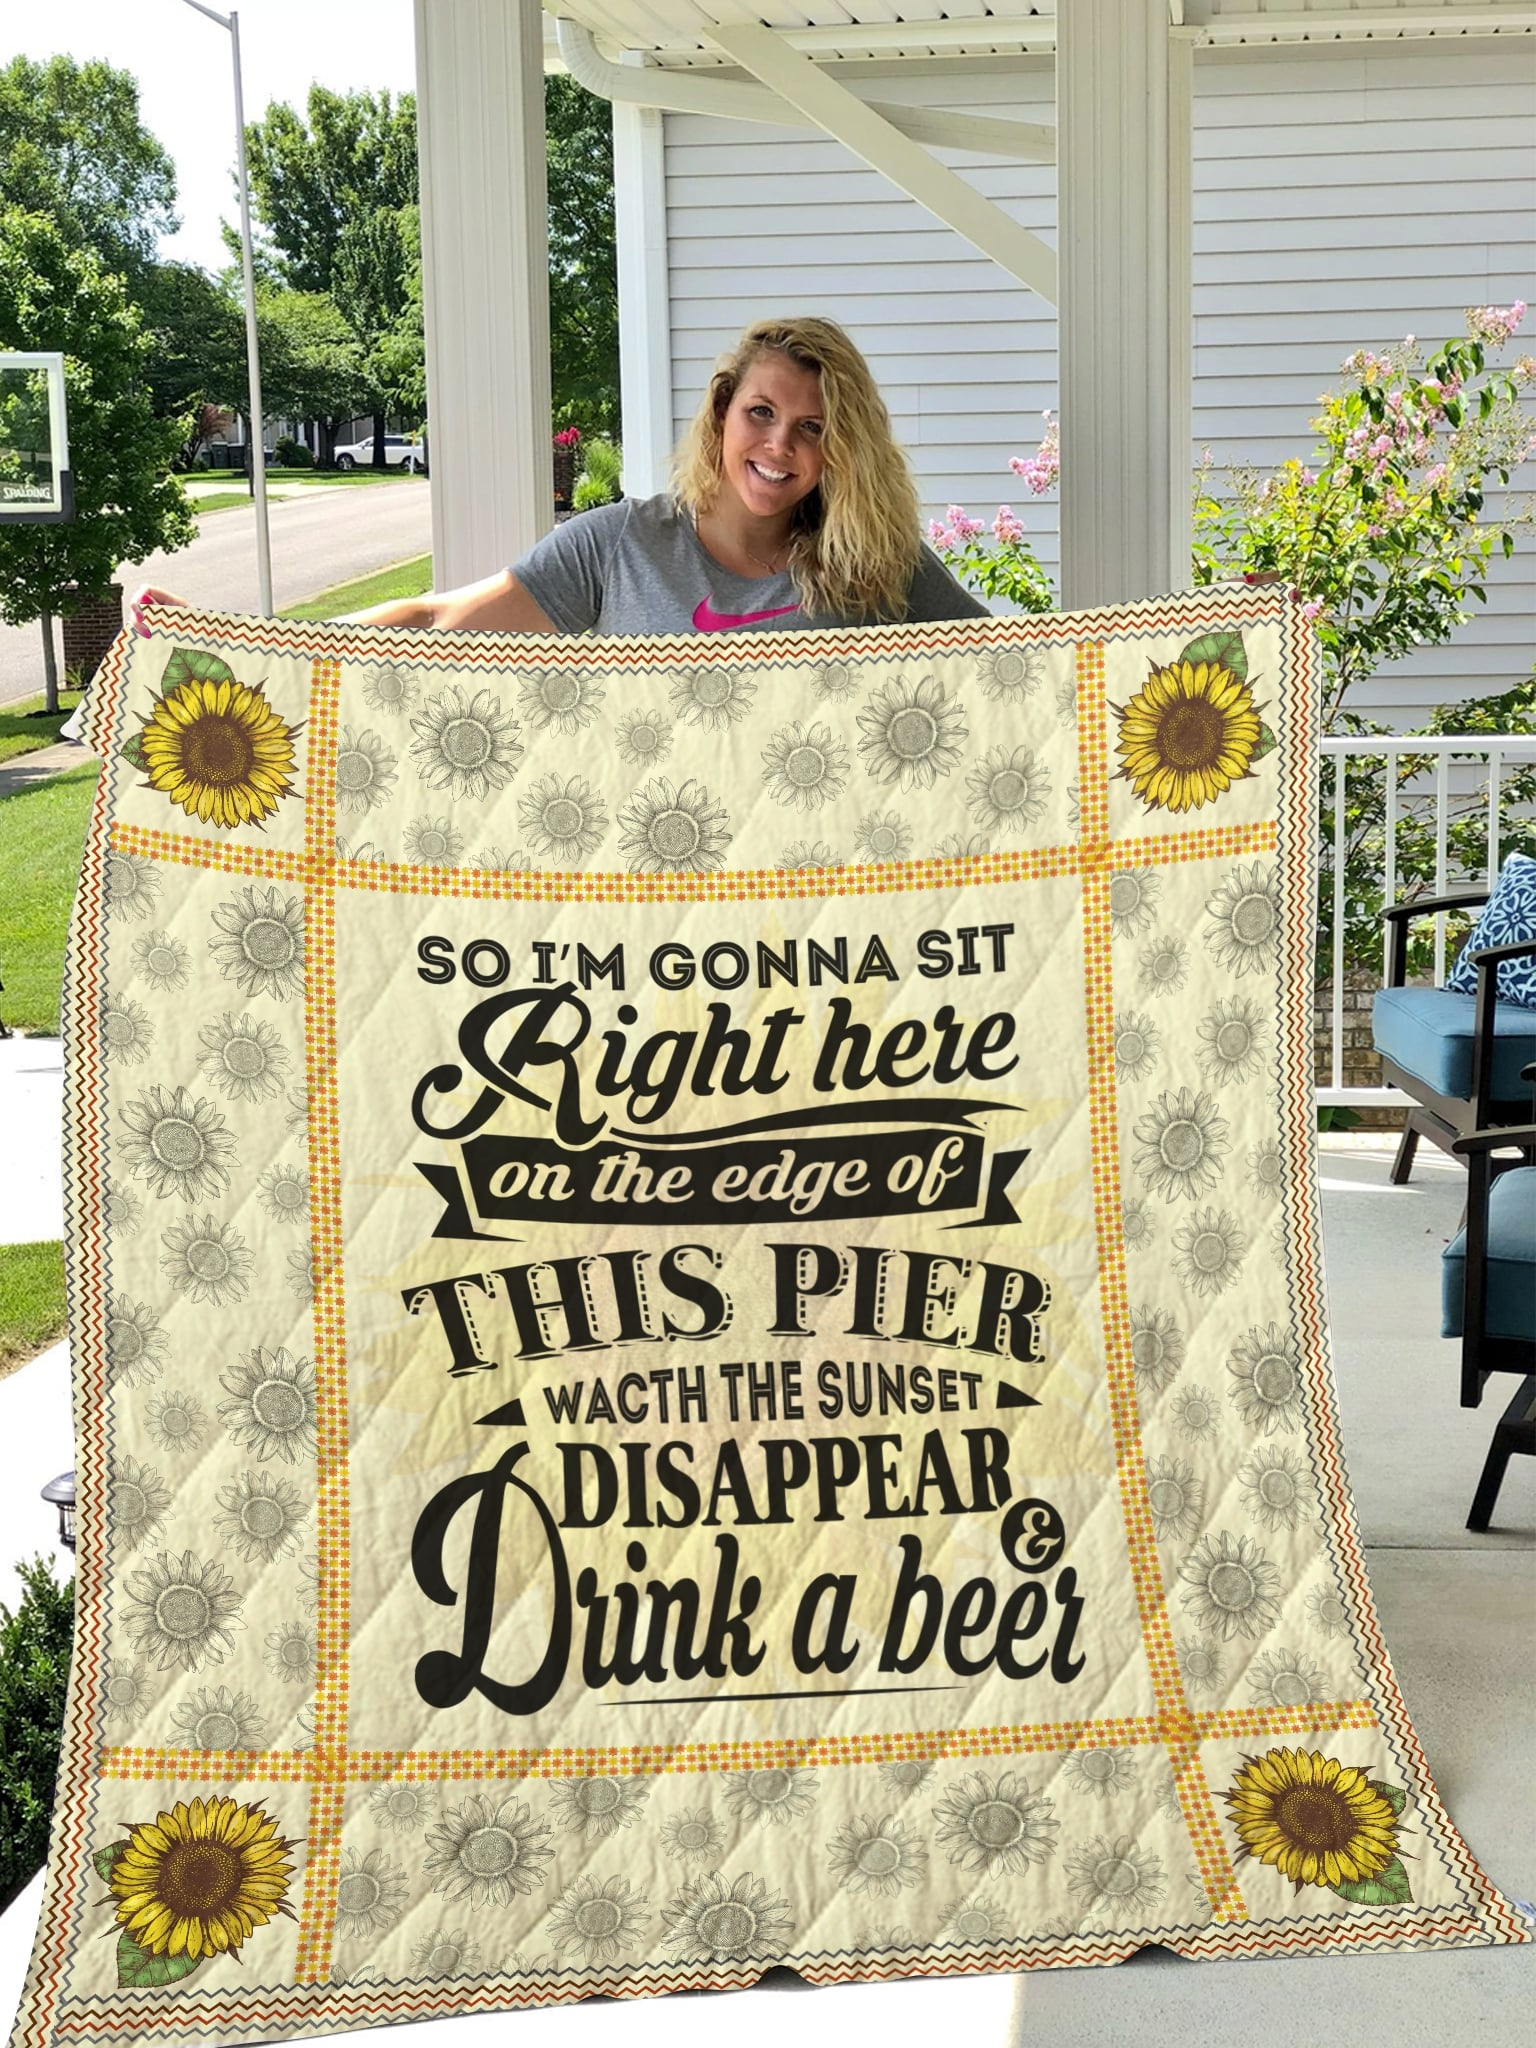 Luke bryan so i'm gonna sit right here and drink a beer quilt 1